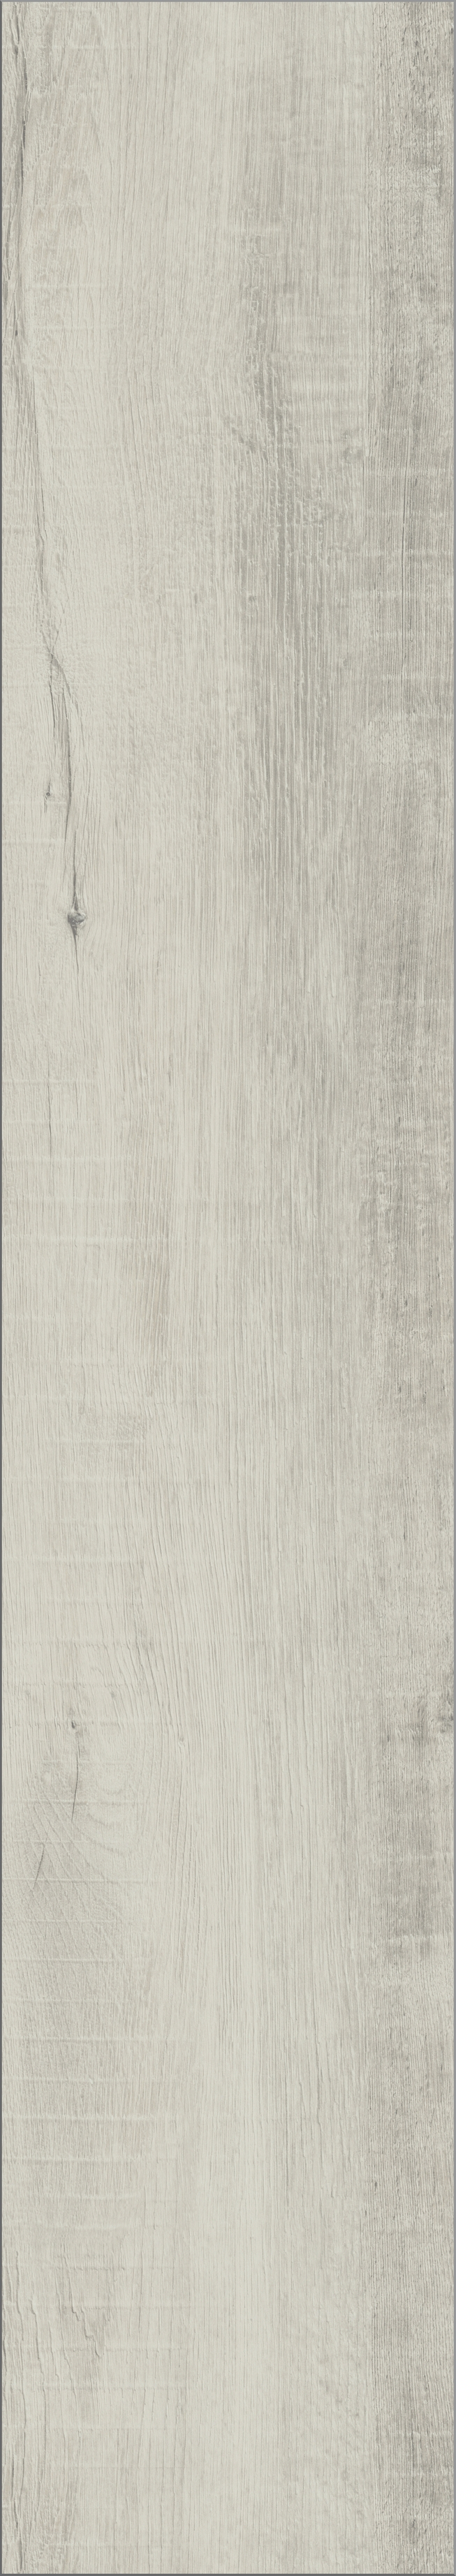 Kronotex exquisit plus gala oak white d 4787 from kronotex for Kronotex laminate